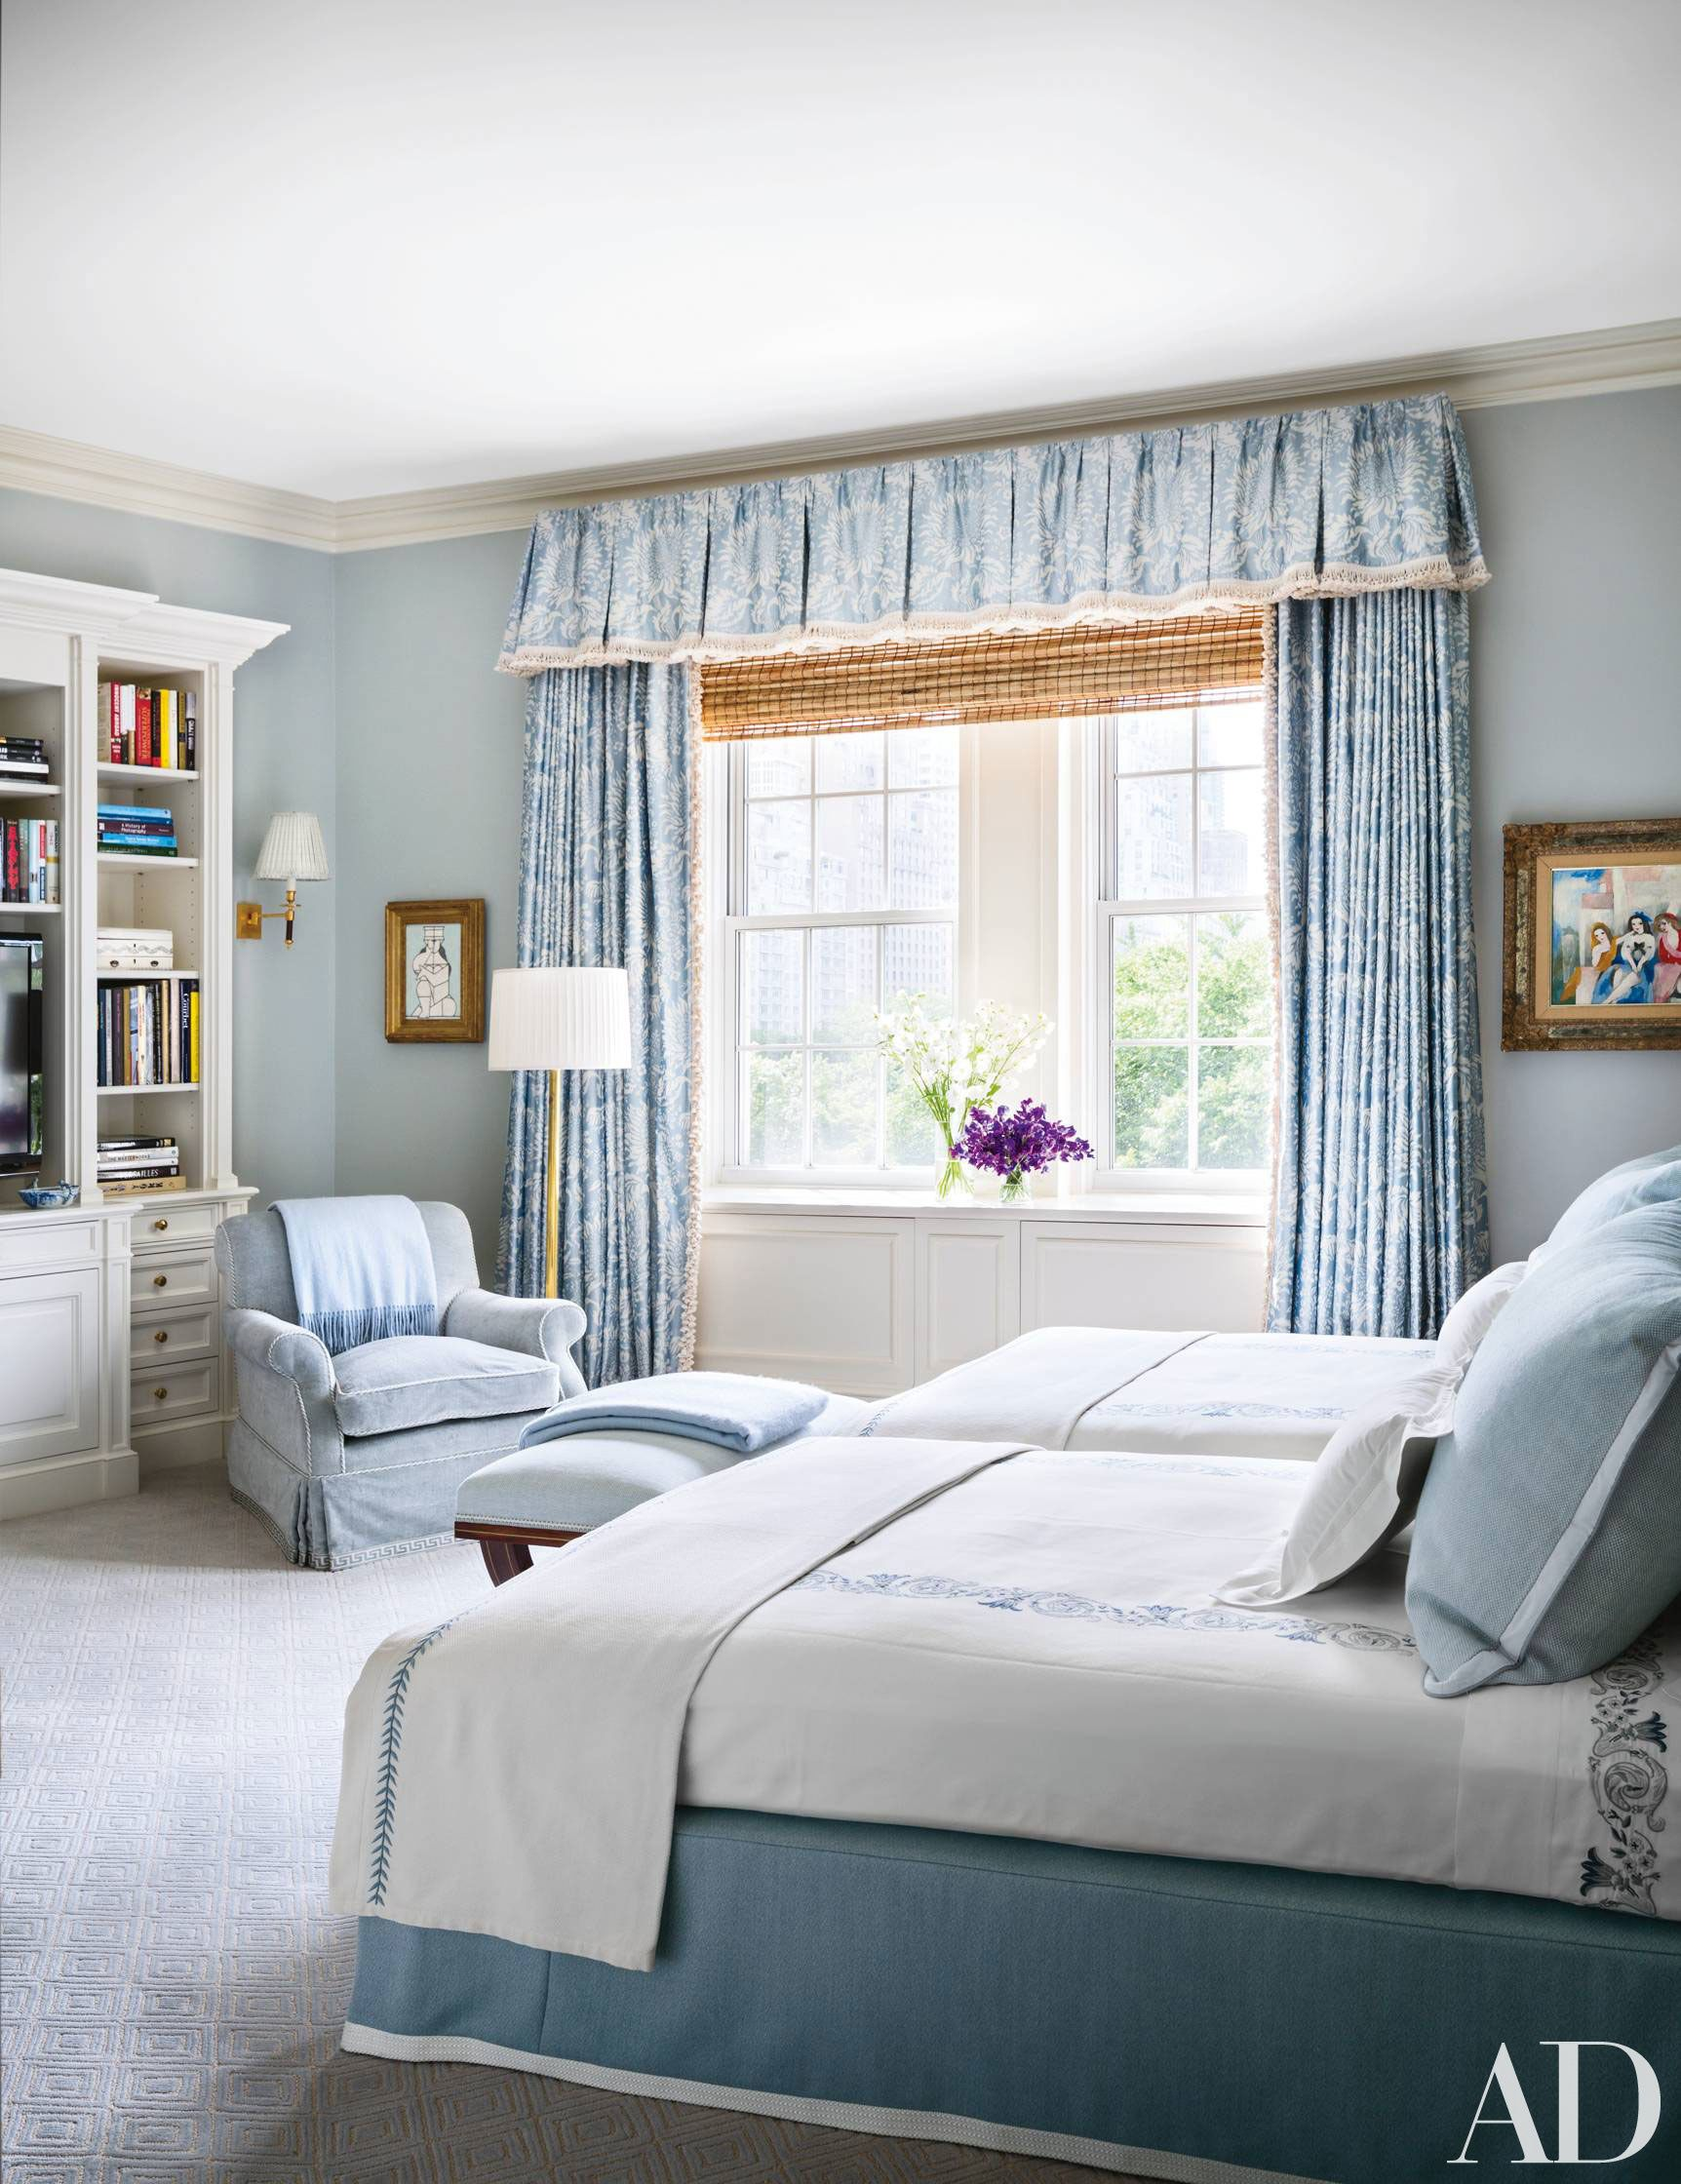 How To Decorate With Two Twin Beds Guest Room And Kids Bedroom Ideas Photos Architectural Digest